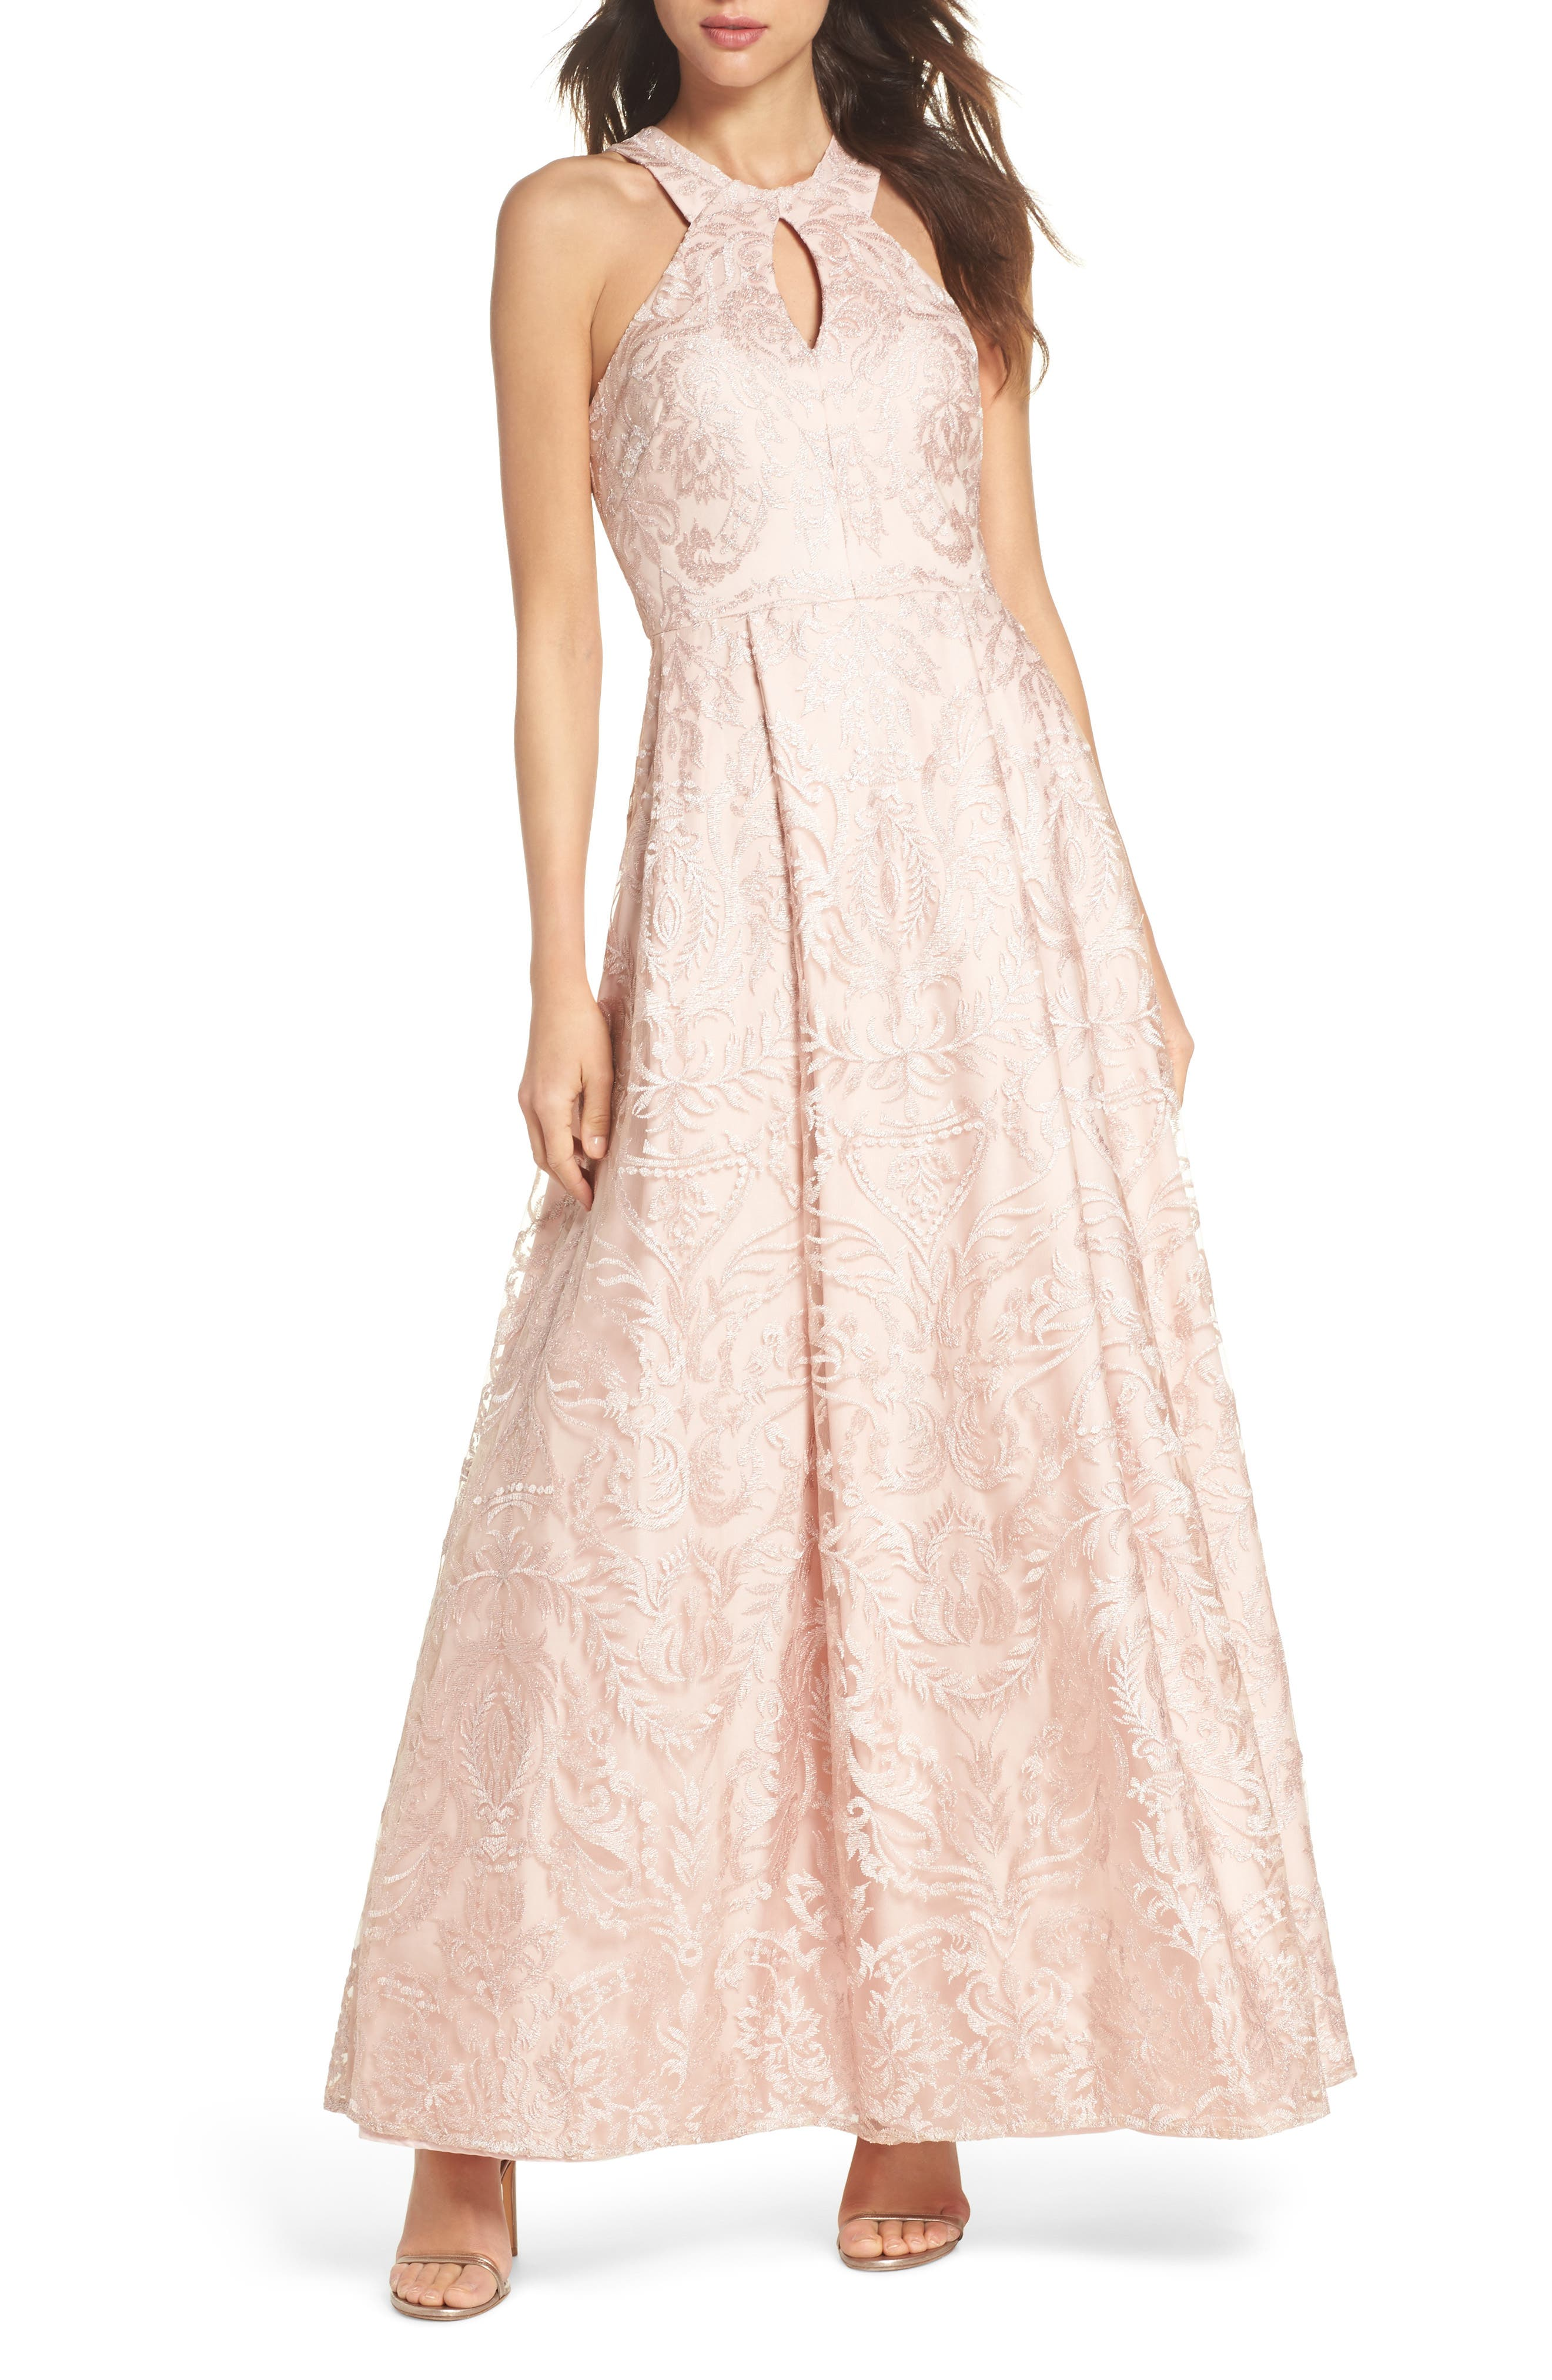 Keyhole Neck Embroidered Ballgown,                             Main thumbnail 1, color,                             Blush / Nude